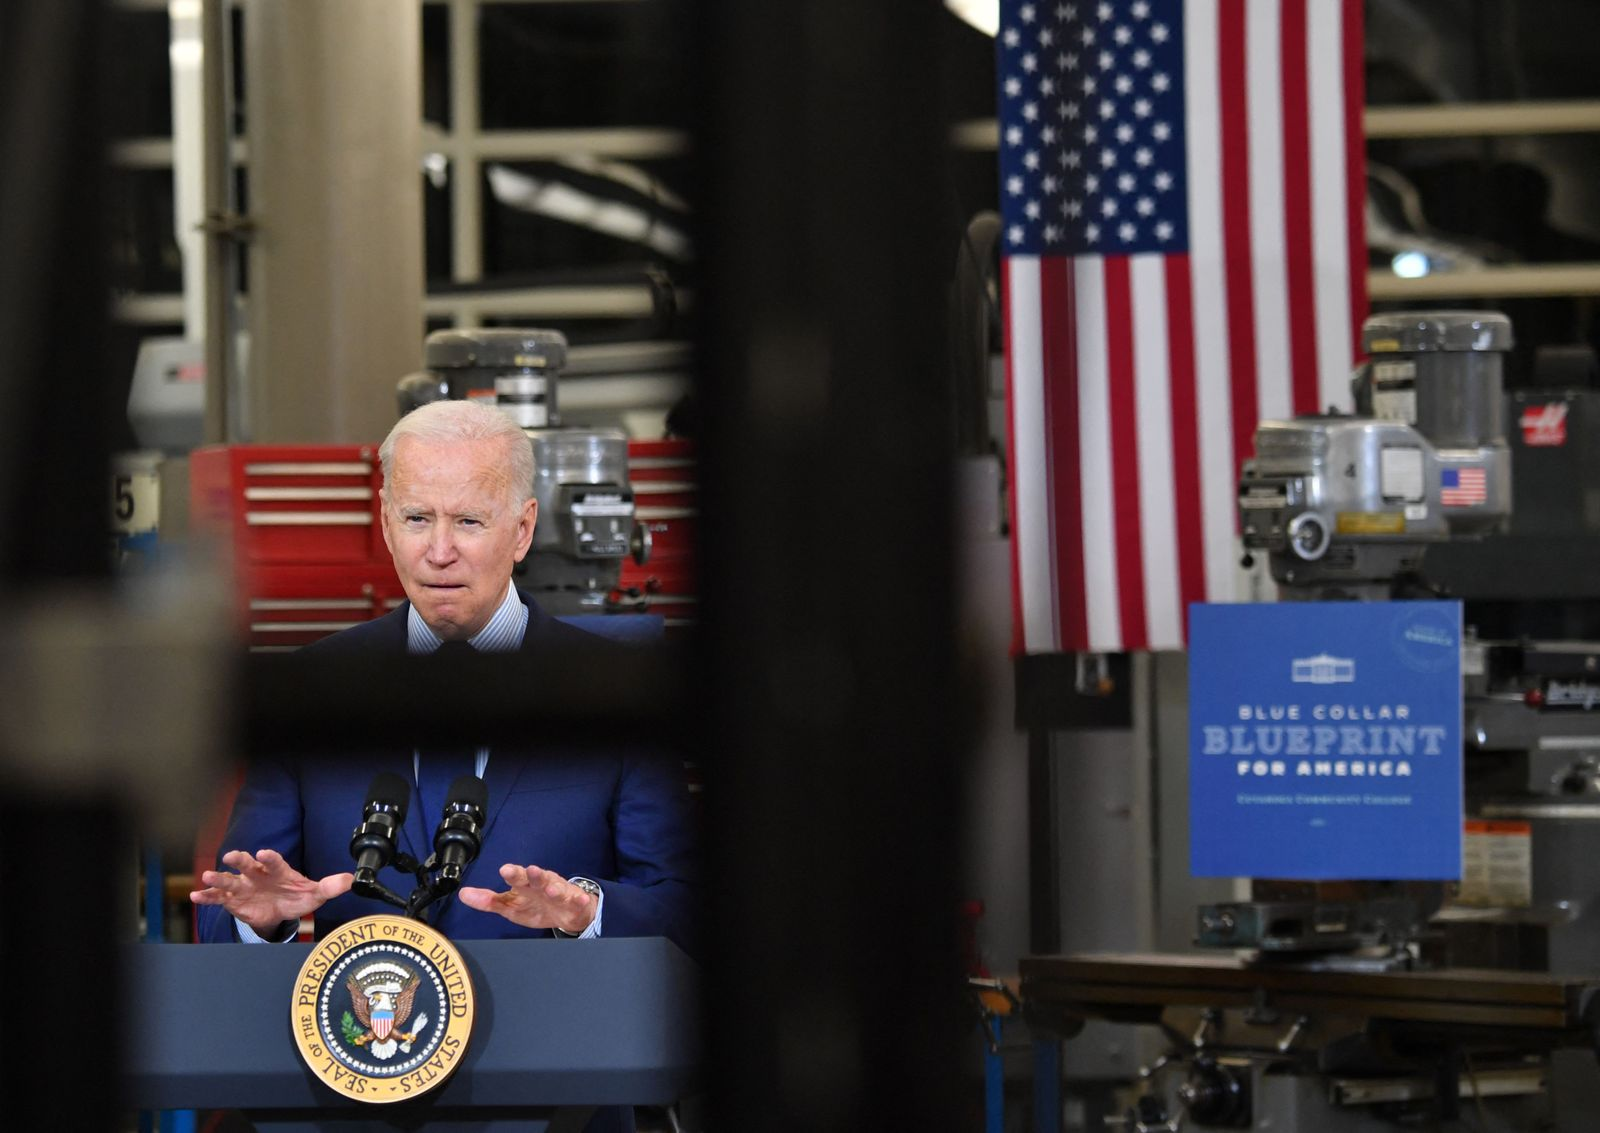 Biden delivers remarks on the economy on visit to Ohio